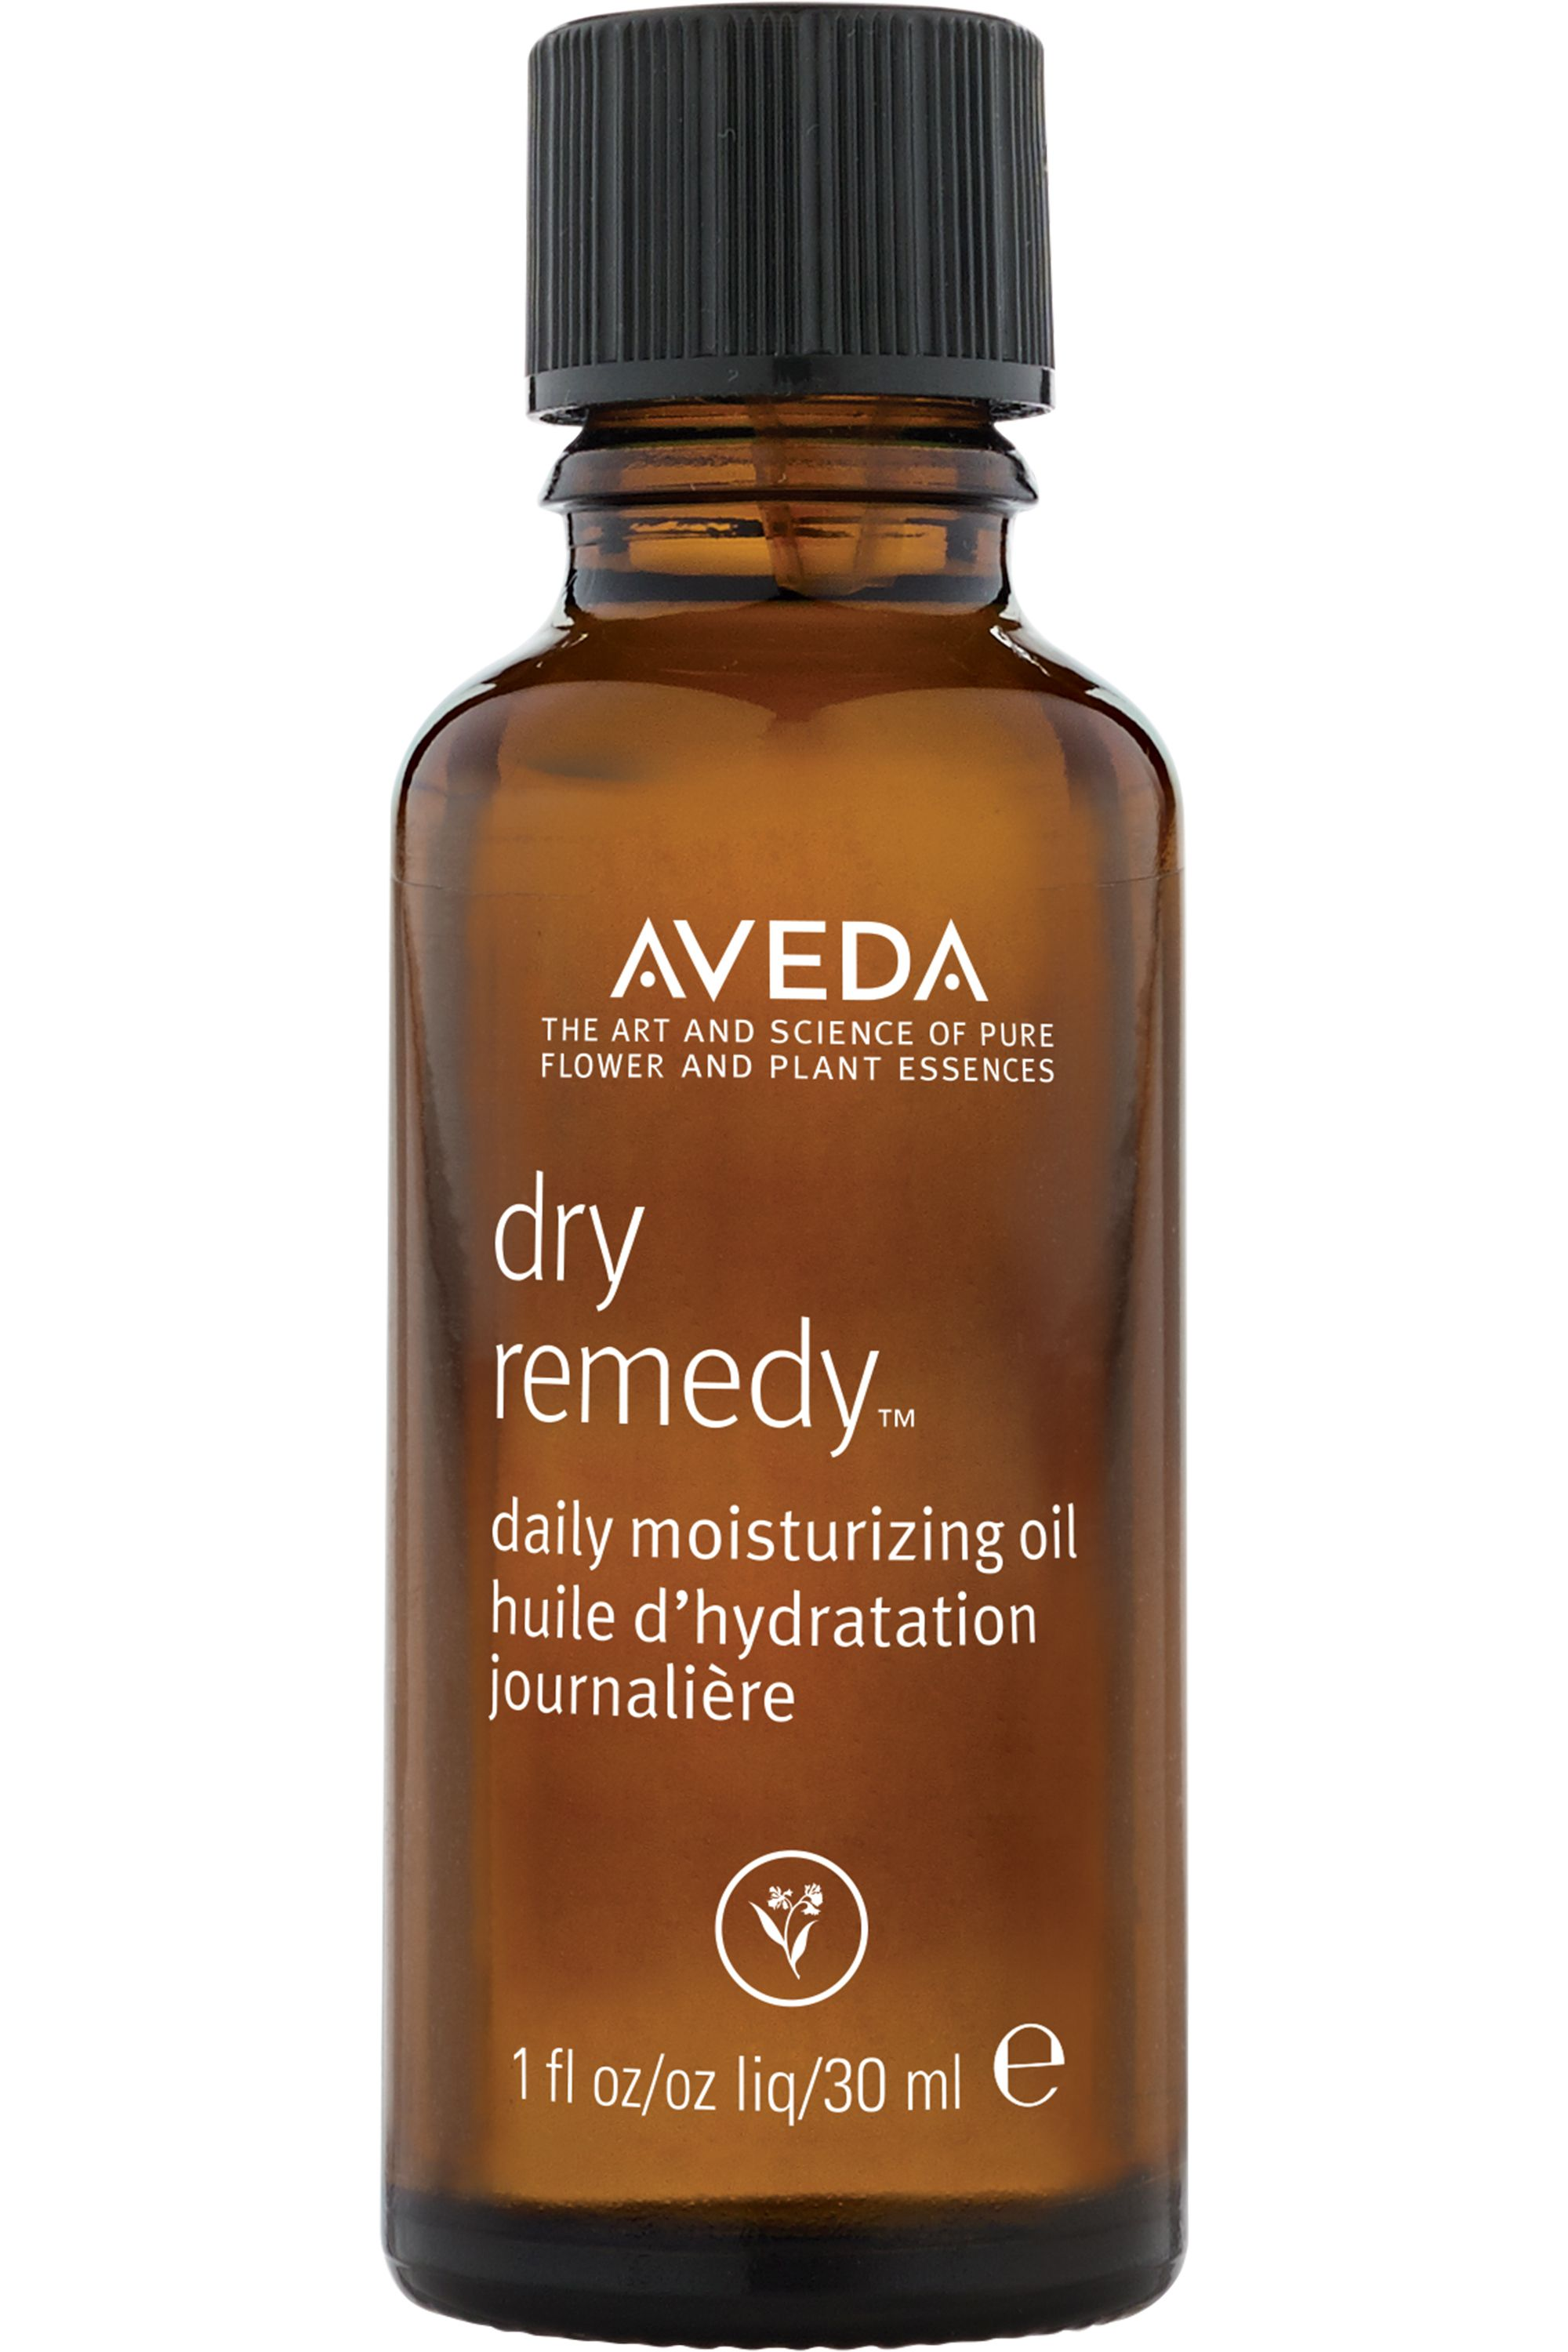 Blissim : Aveda - Huile d'hydratation quotidienne Dry Remedy™ - Huile d'hydratation quotidienne Dry Remedy™